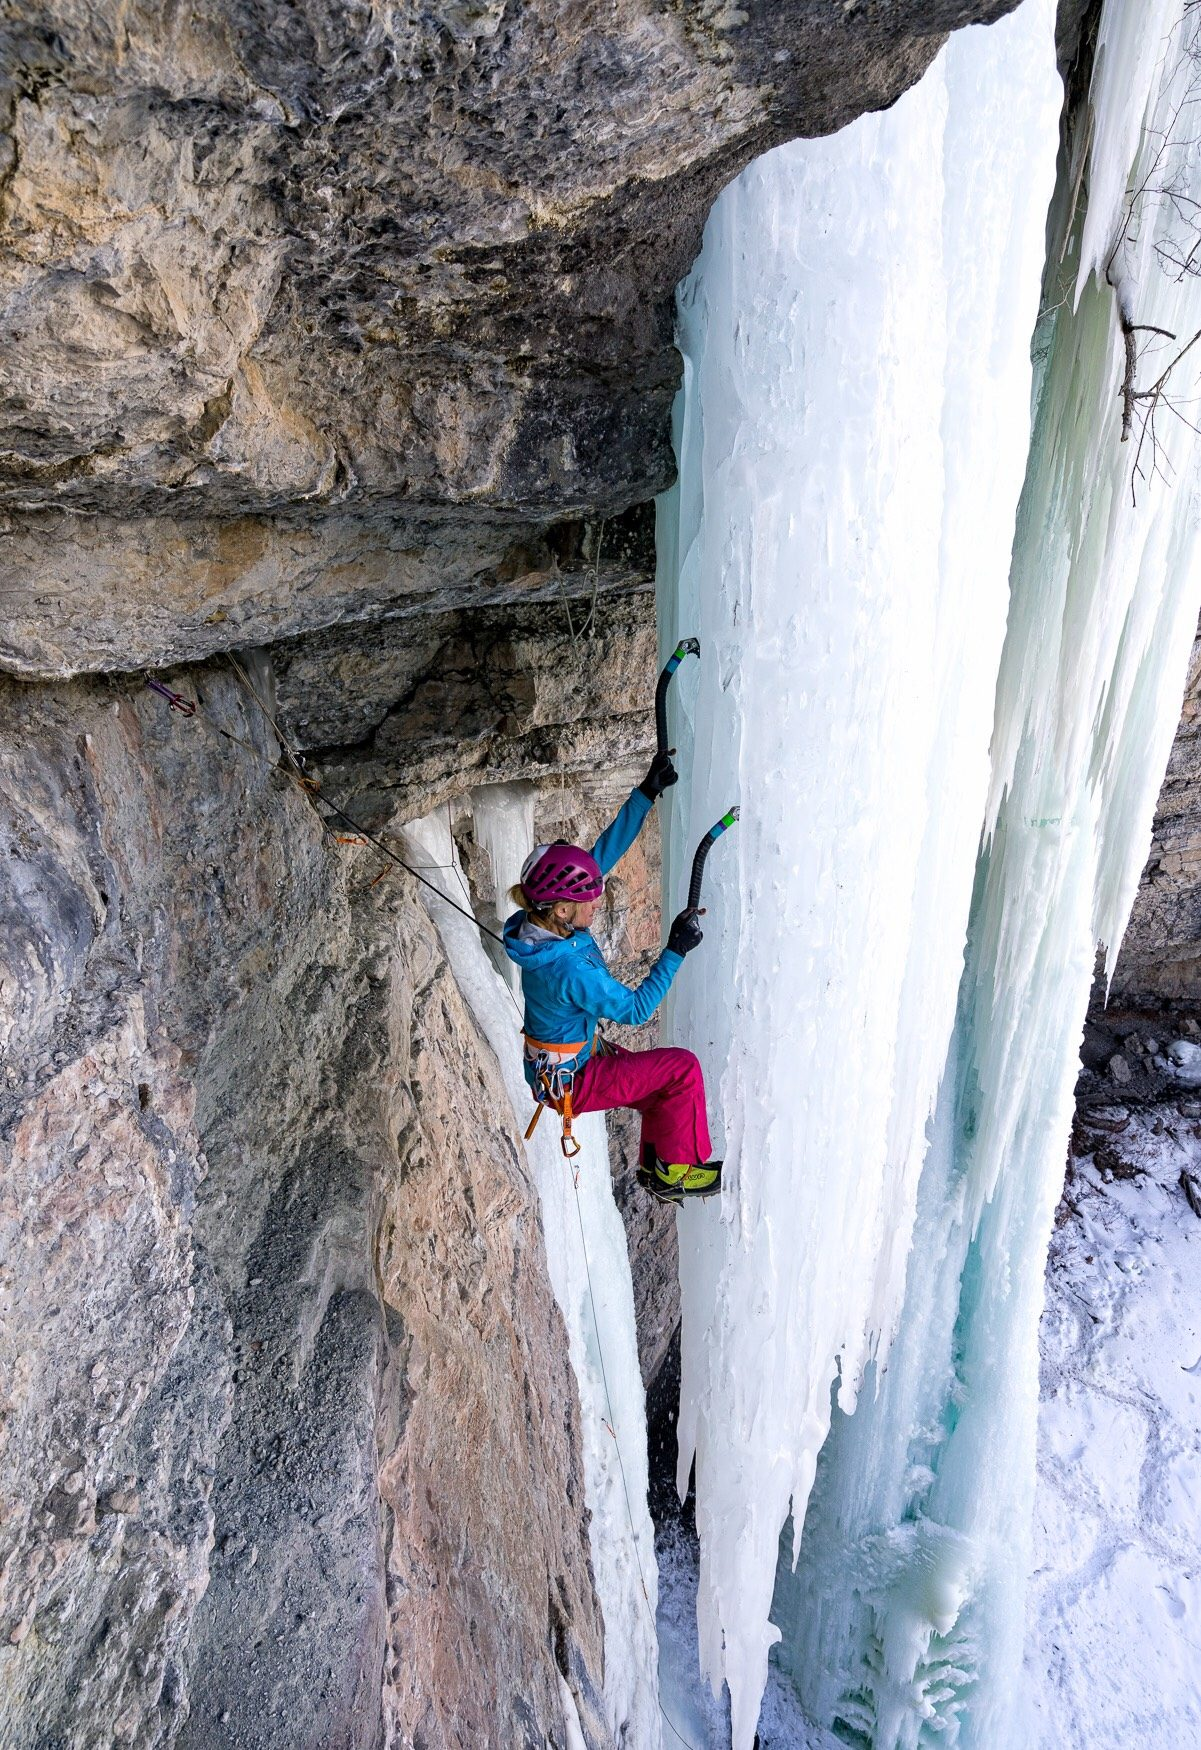 Beth Goralski ice climbing, shot by Scott Cramer